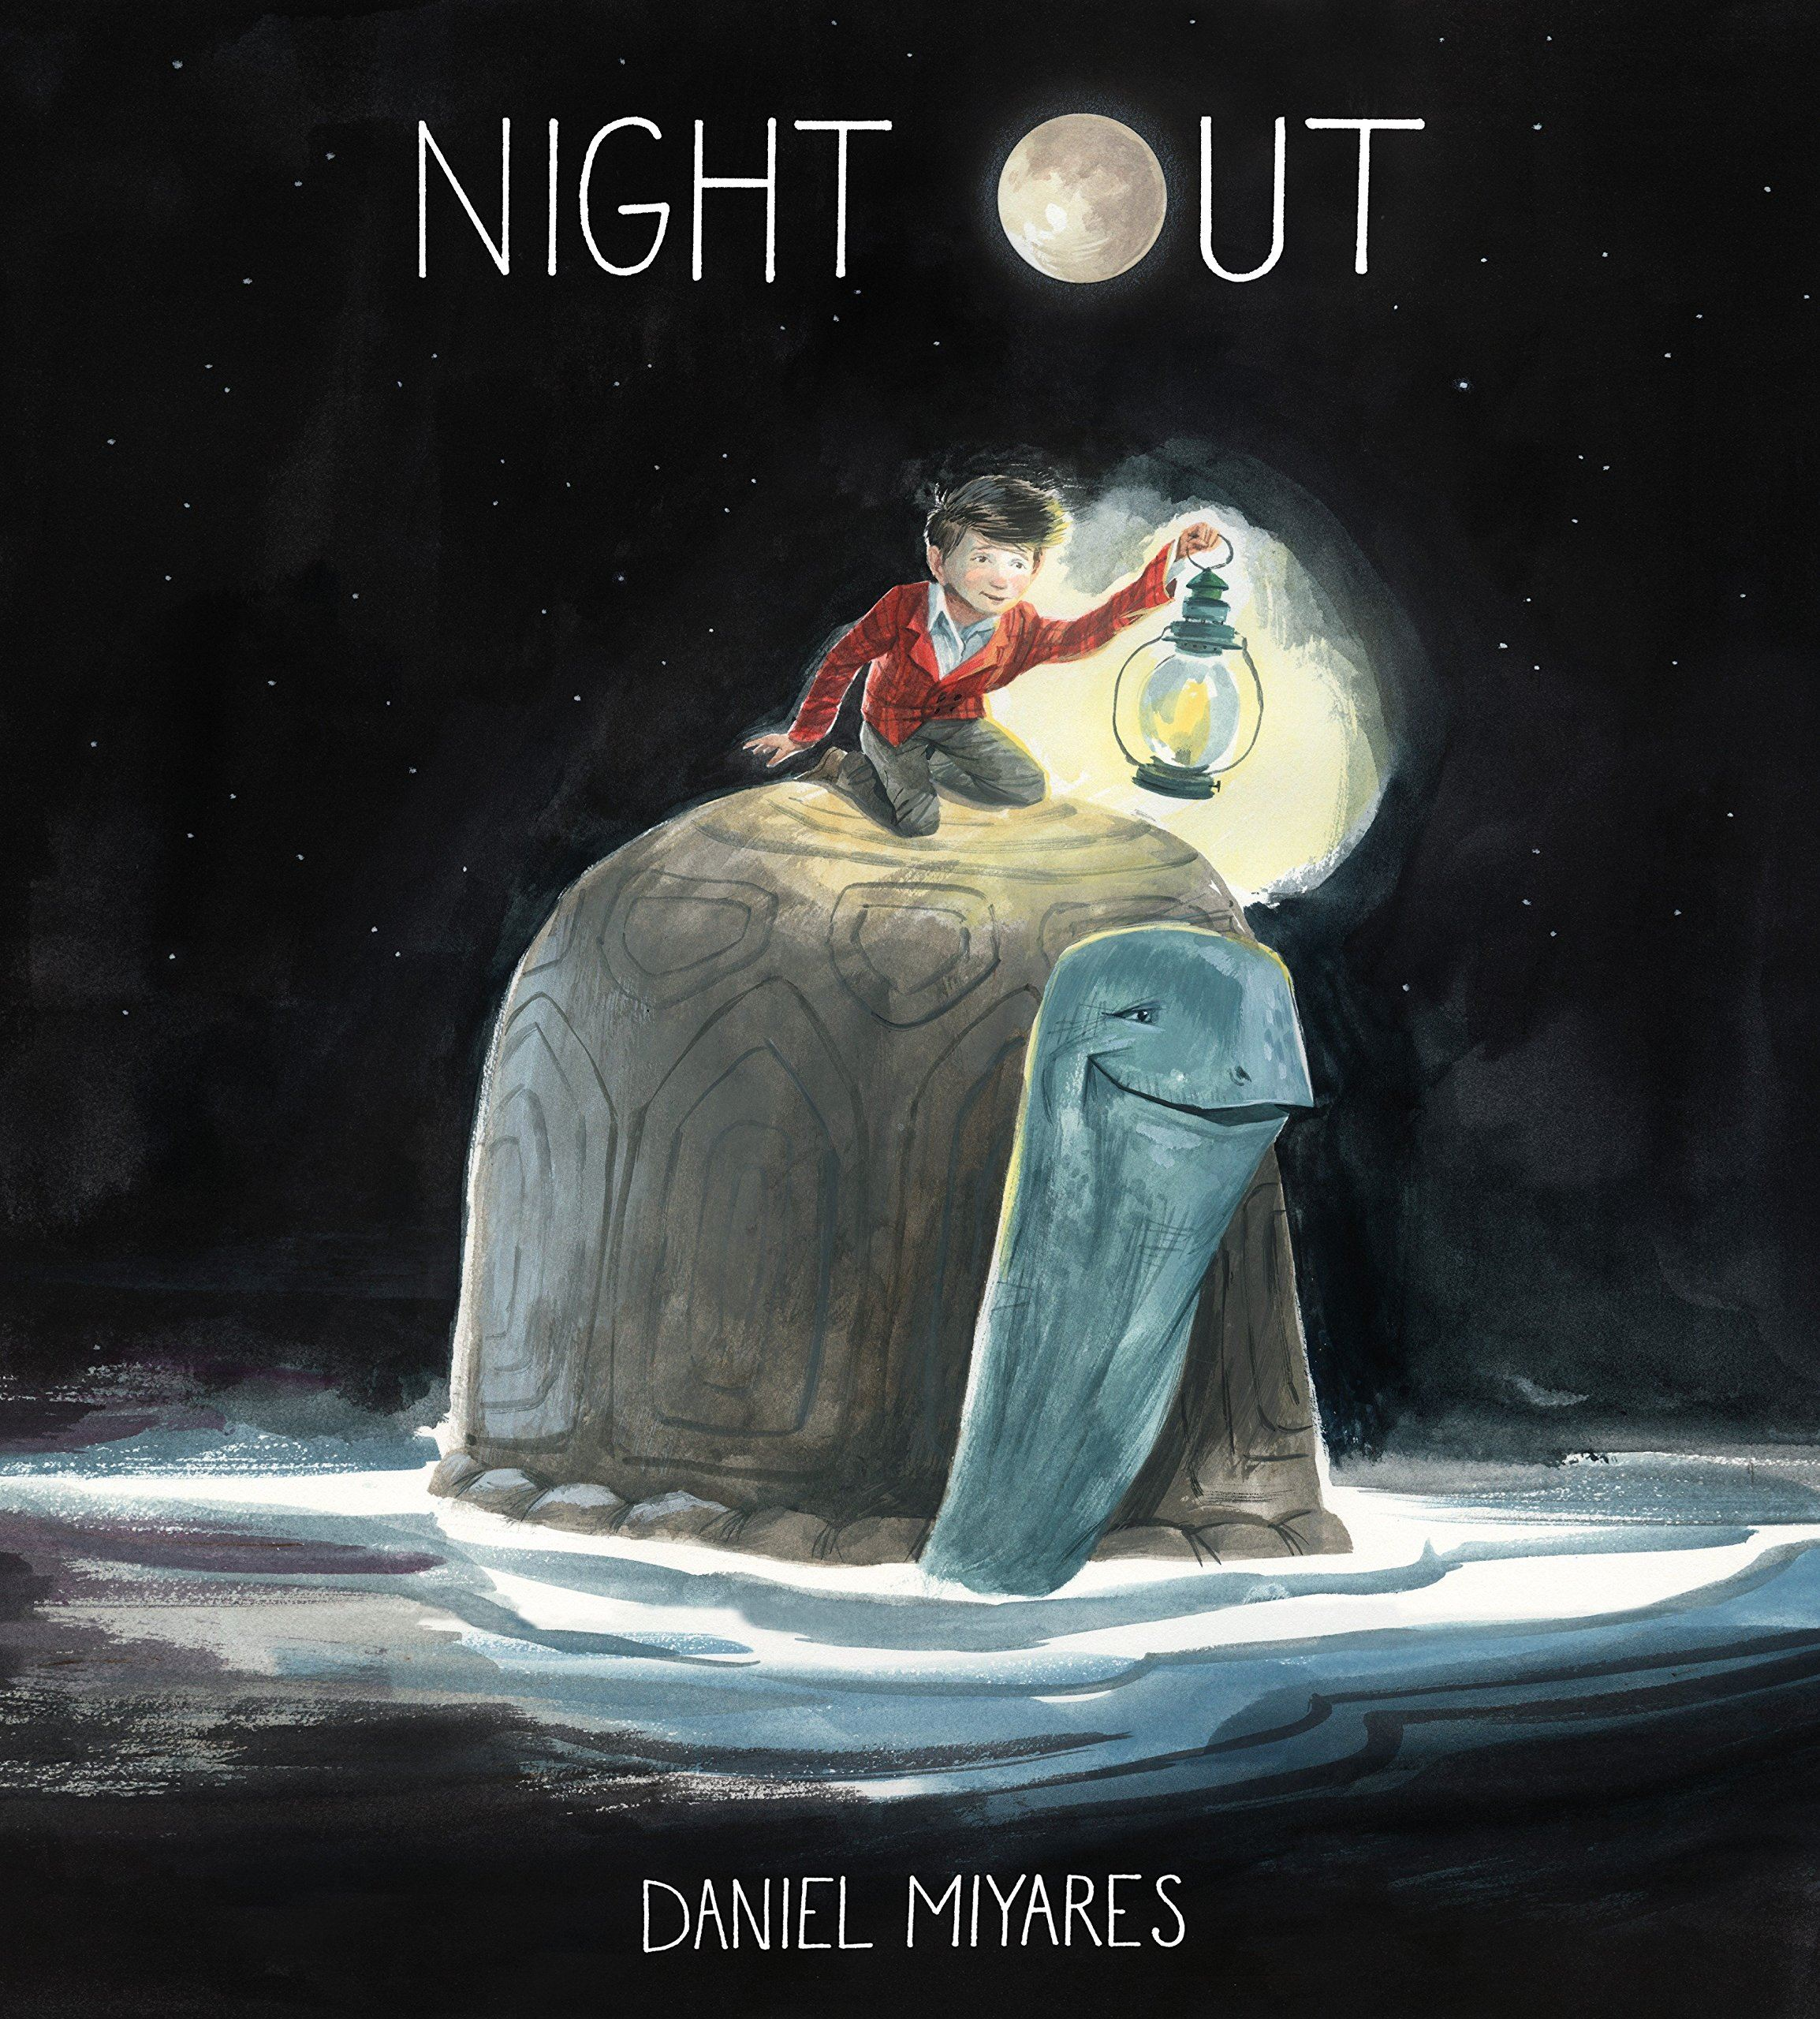 cover art for the book Night Out by Daniel Miyares